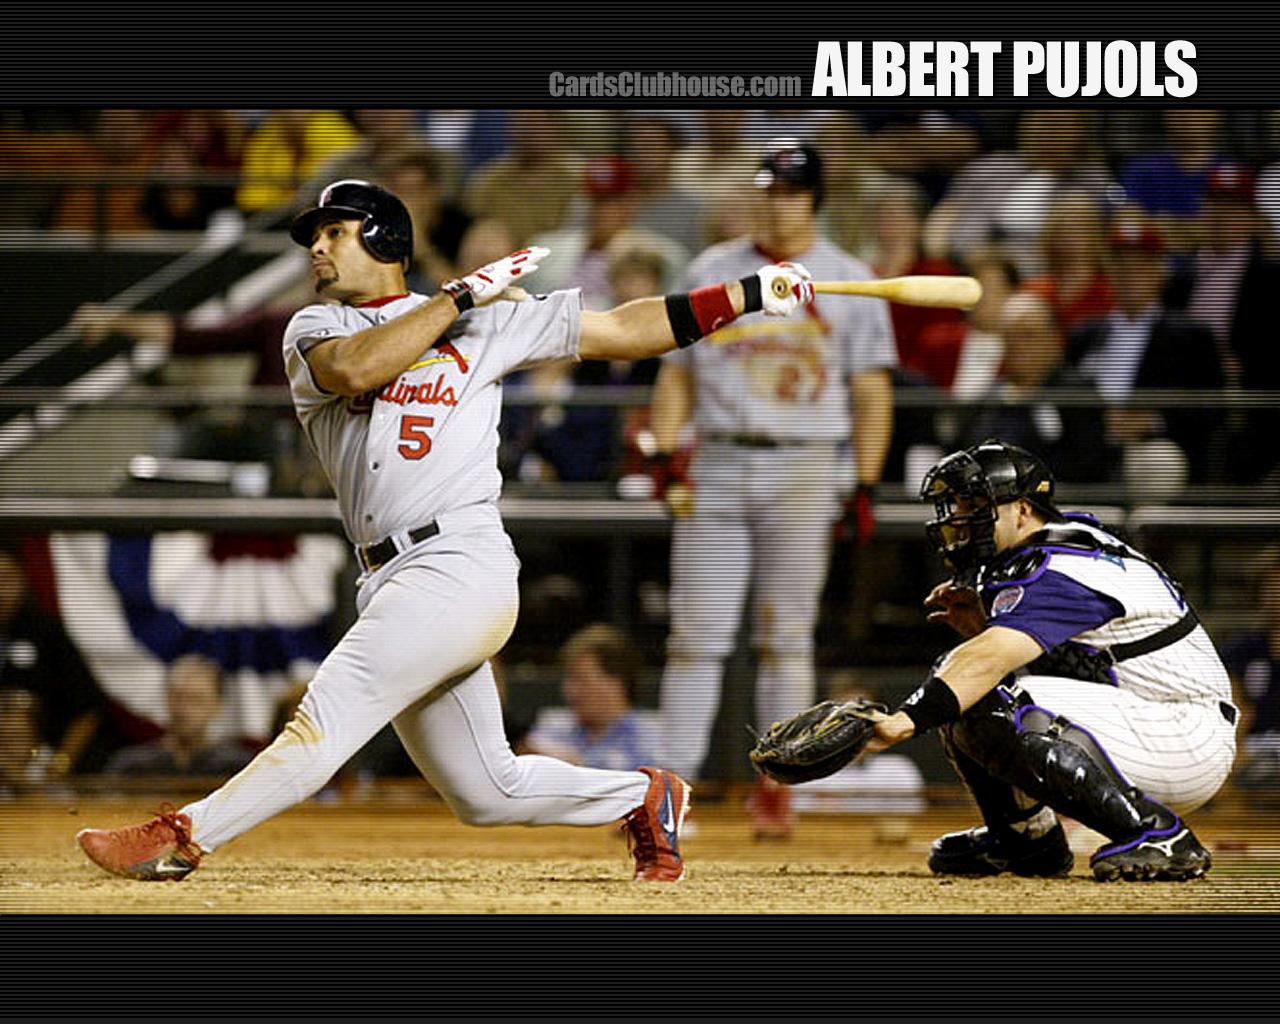 sports bloopers funny humor pujols moments albert uncensored backgrounds wallpapers cartoon quotes captions faces adult hd smiley quotesgram pic short